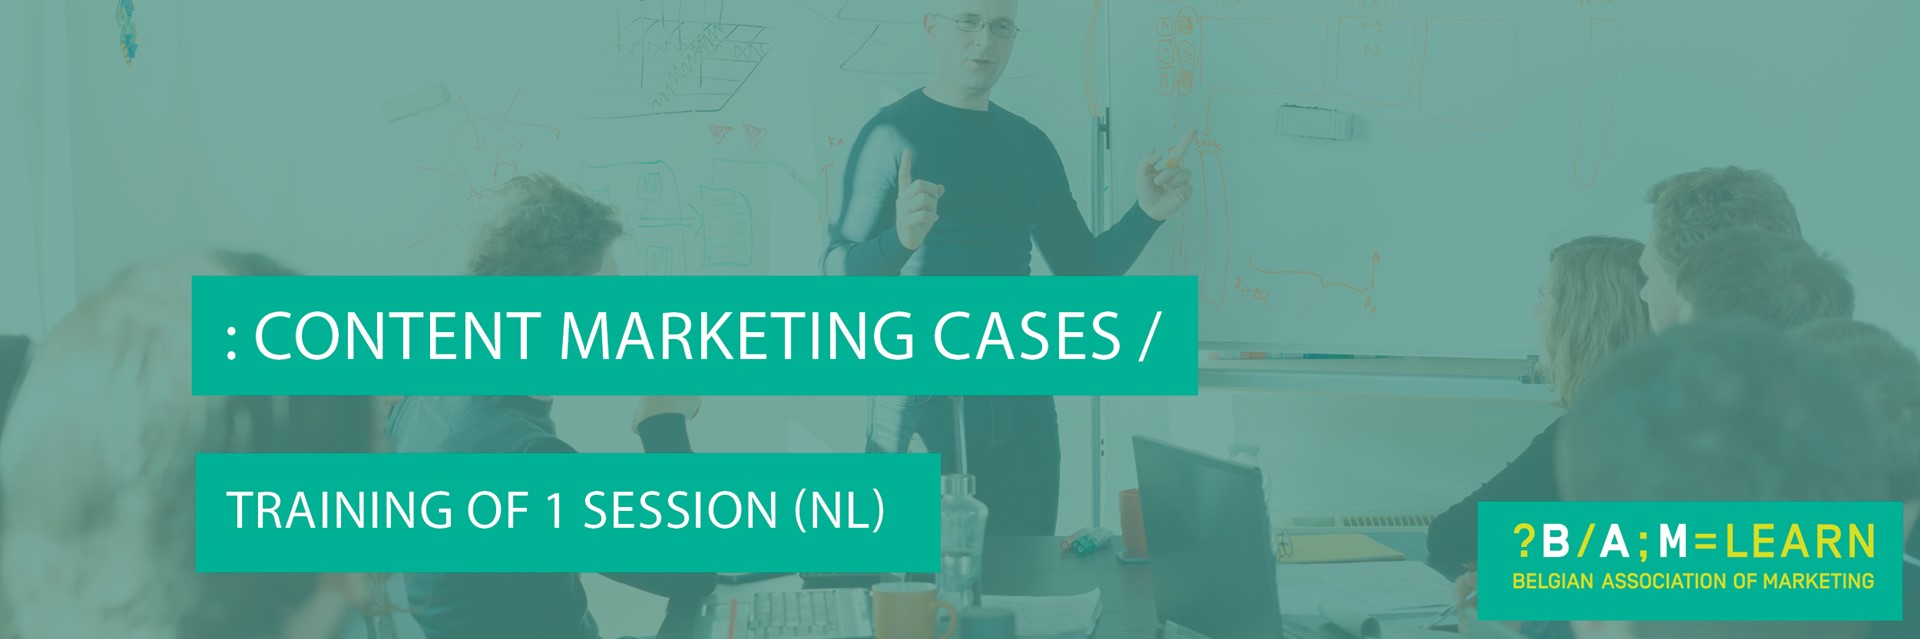 content marketing cases